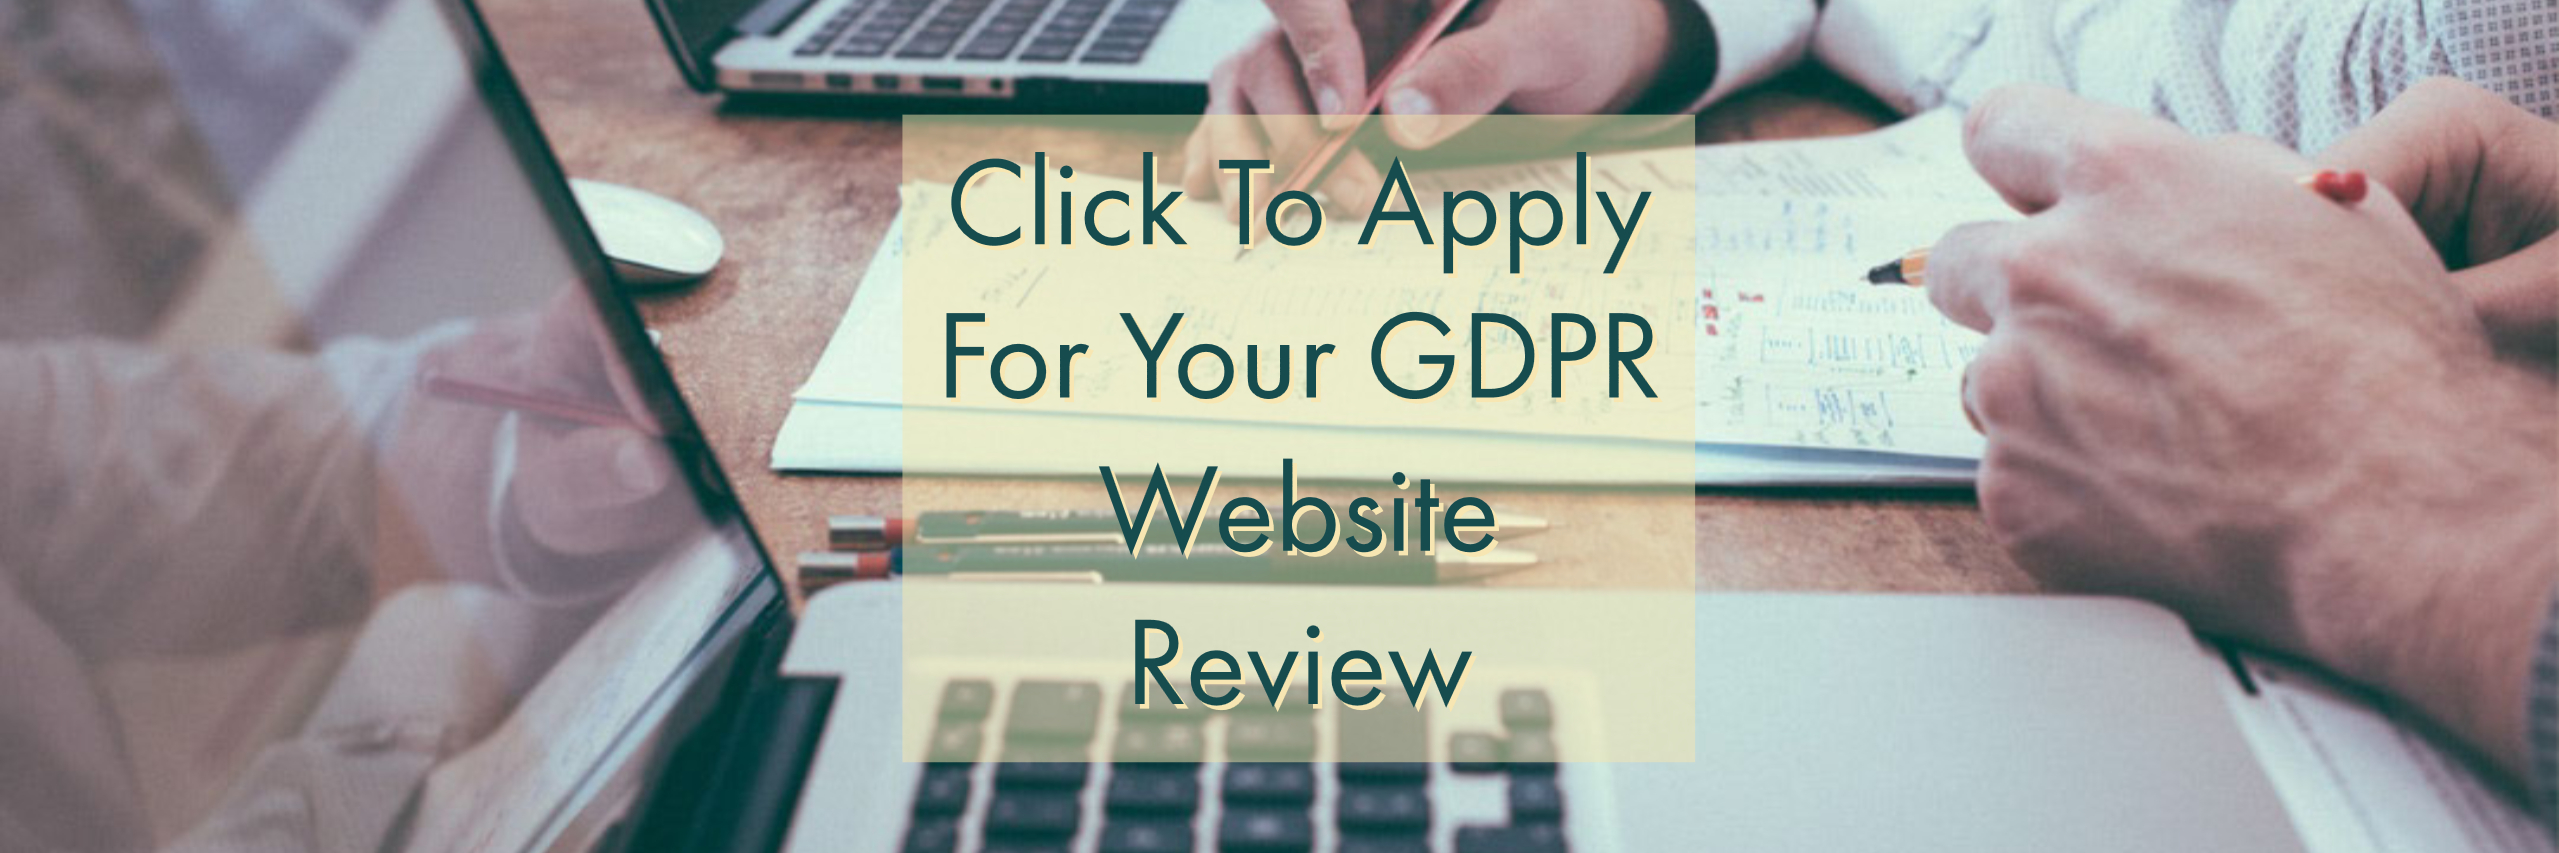 click to apply for your GDPR website audit